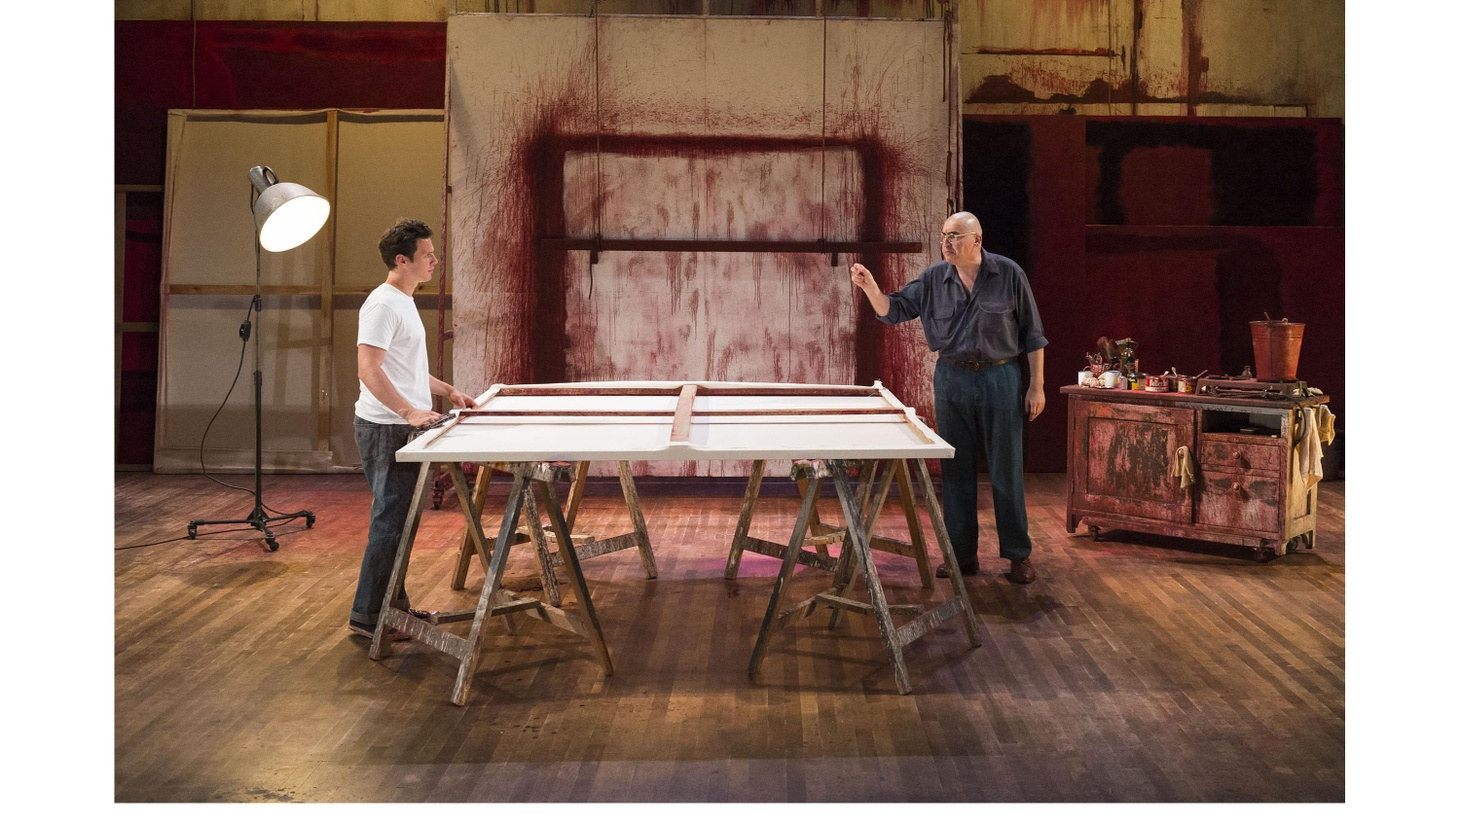 """At the heart of the play """"Red"""", two men stand before a massive canvas. It's center stage in Mark Rothko's cavernous studio.  The blank expanse towers before the artist and his young assistant. As the young man pours thick red paint into two galvanized buckets, Rothko, played by Alfred Molina, drops the needle on TLU."""